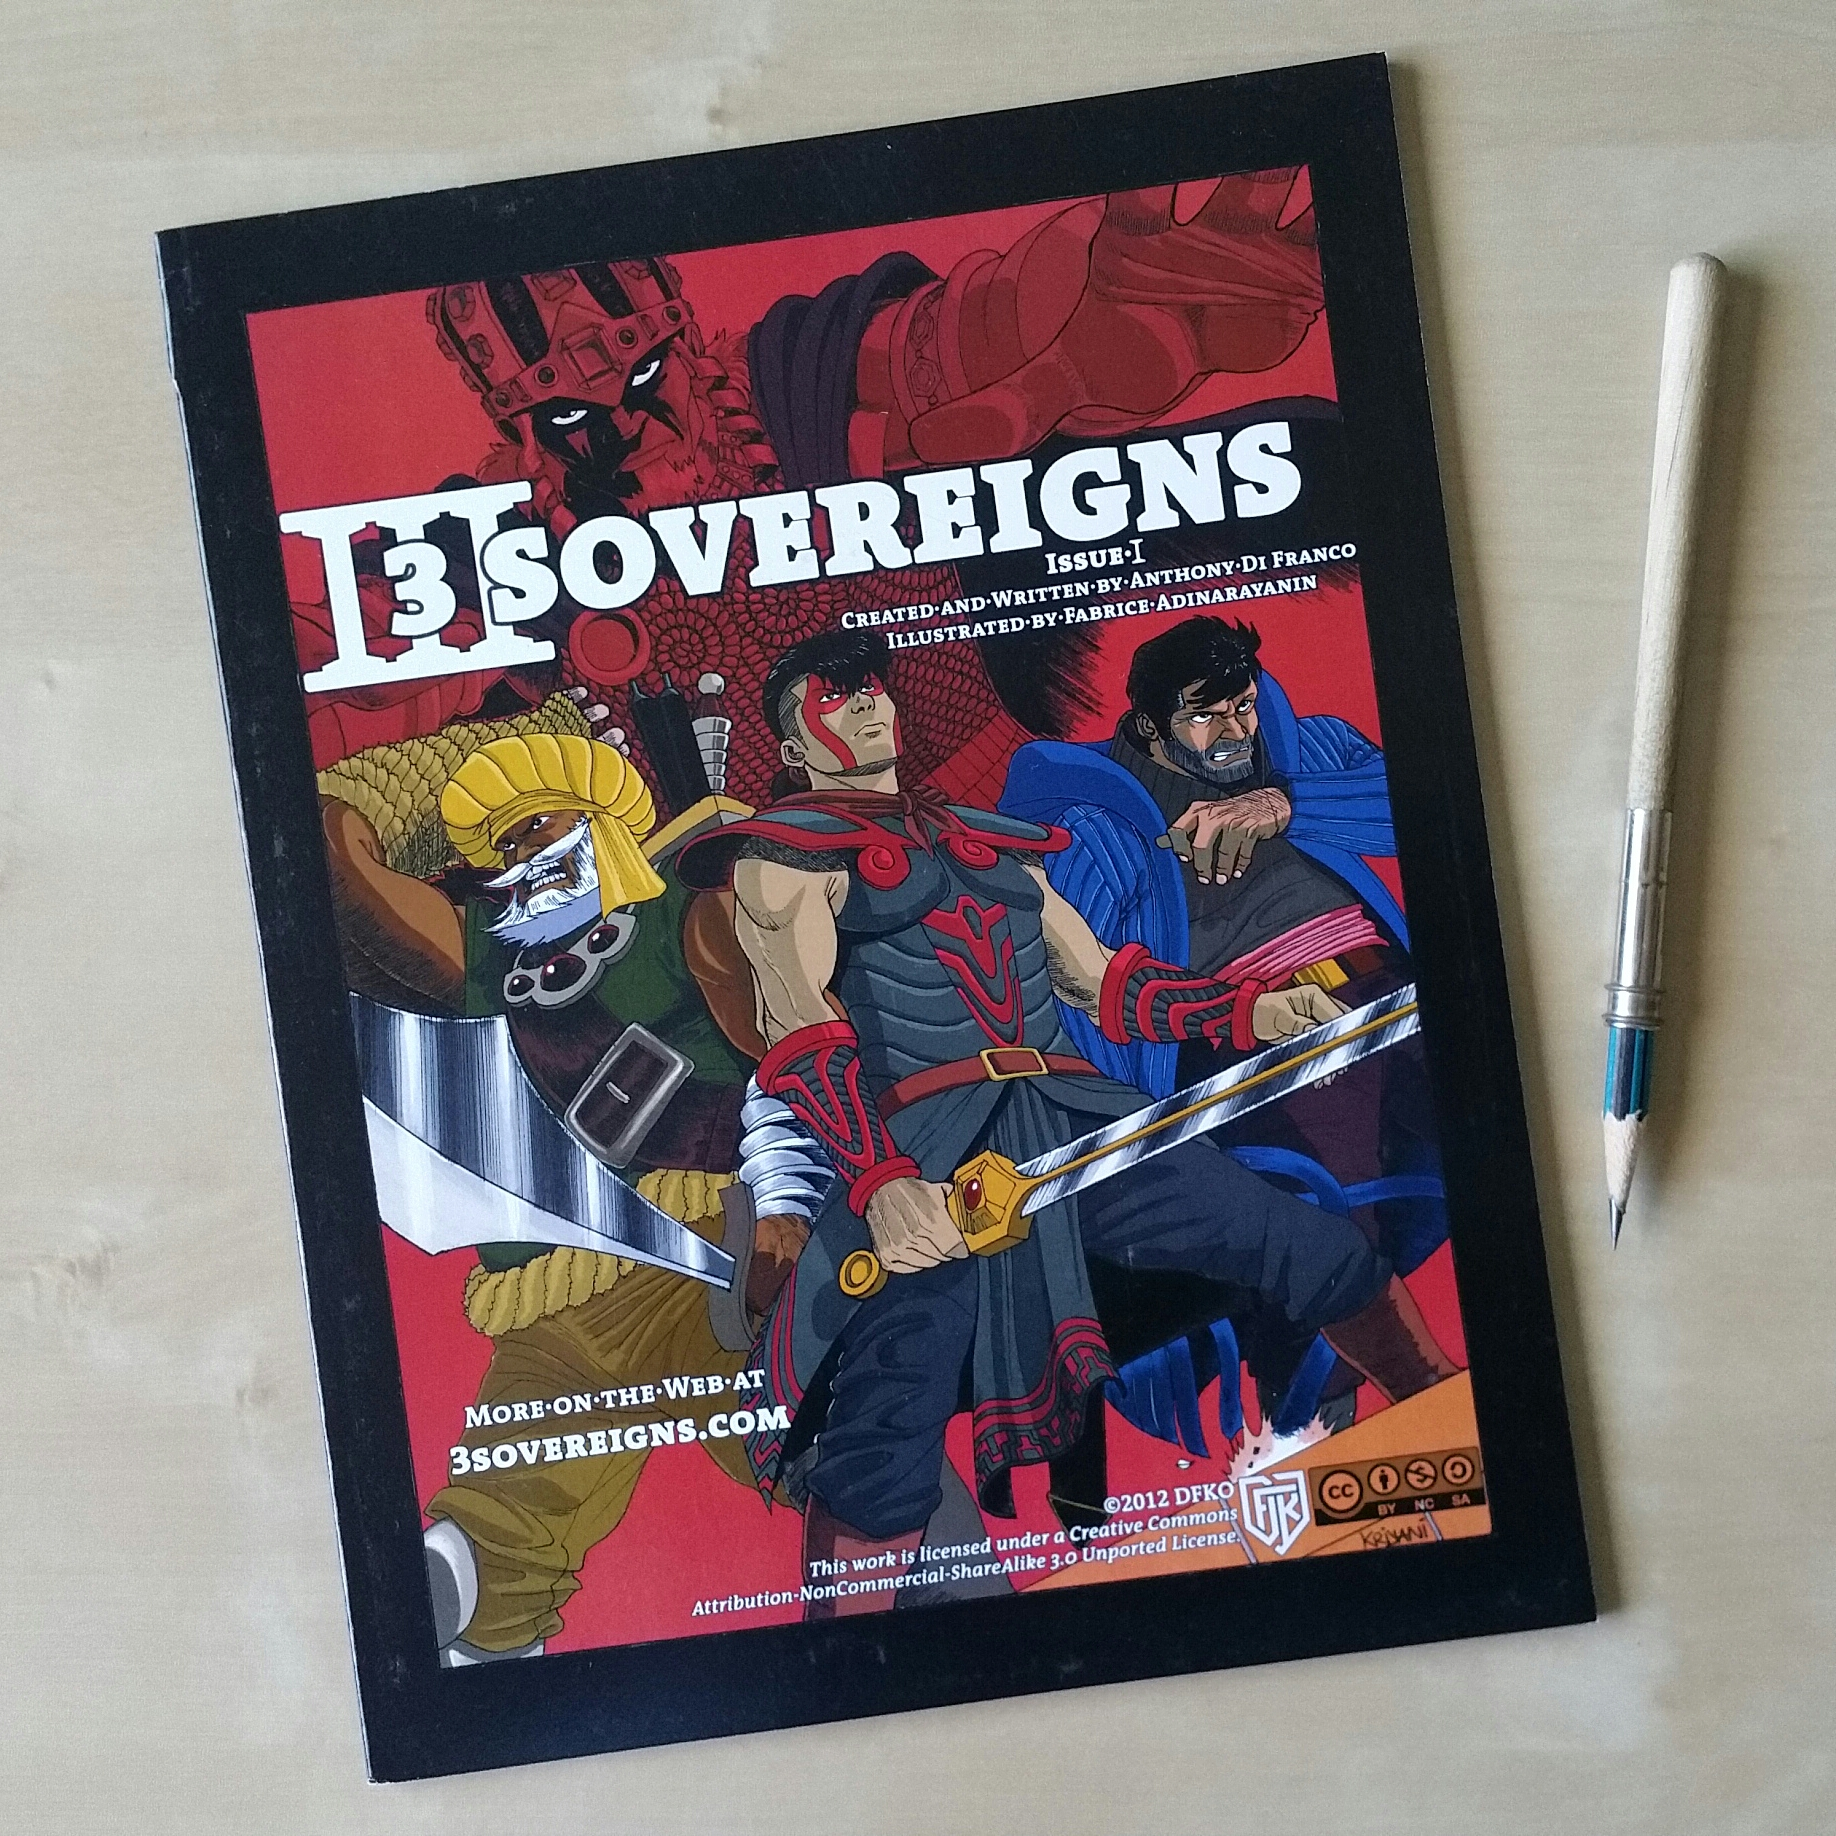 Three Sovereigns Issue 1